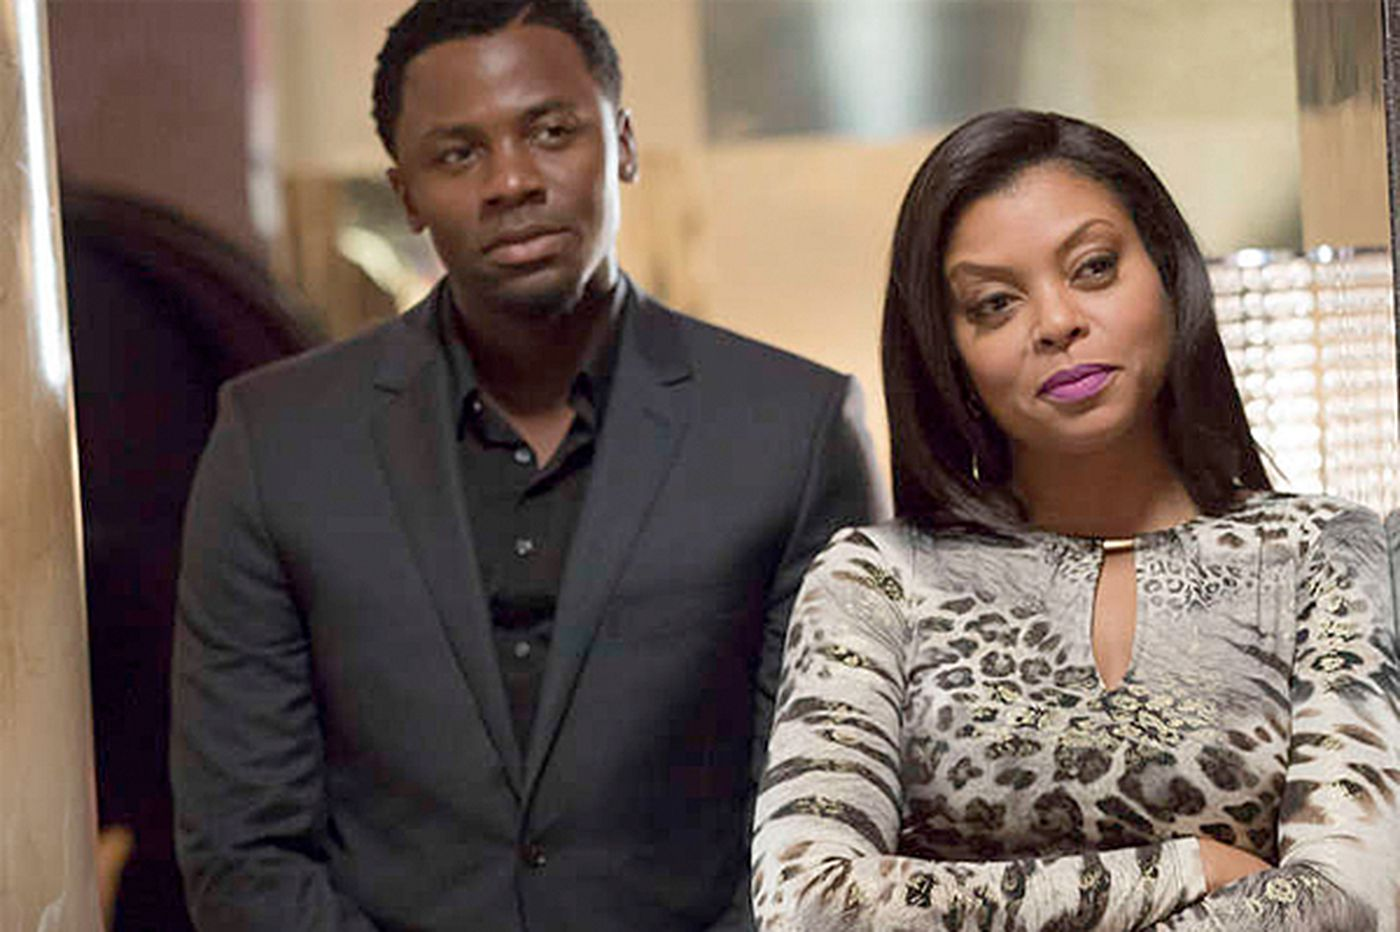 An ode to 'Empire's' Cookie